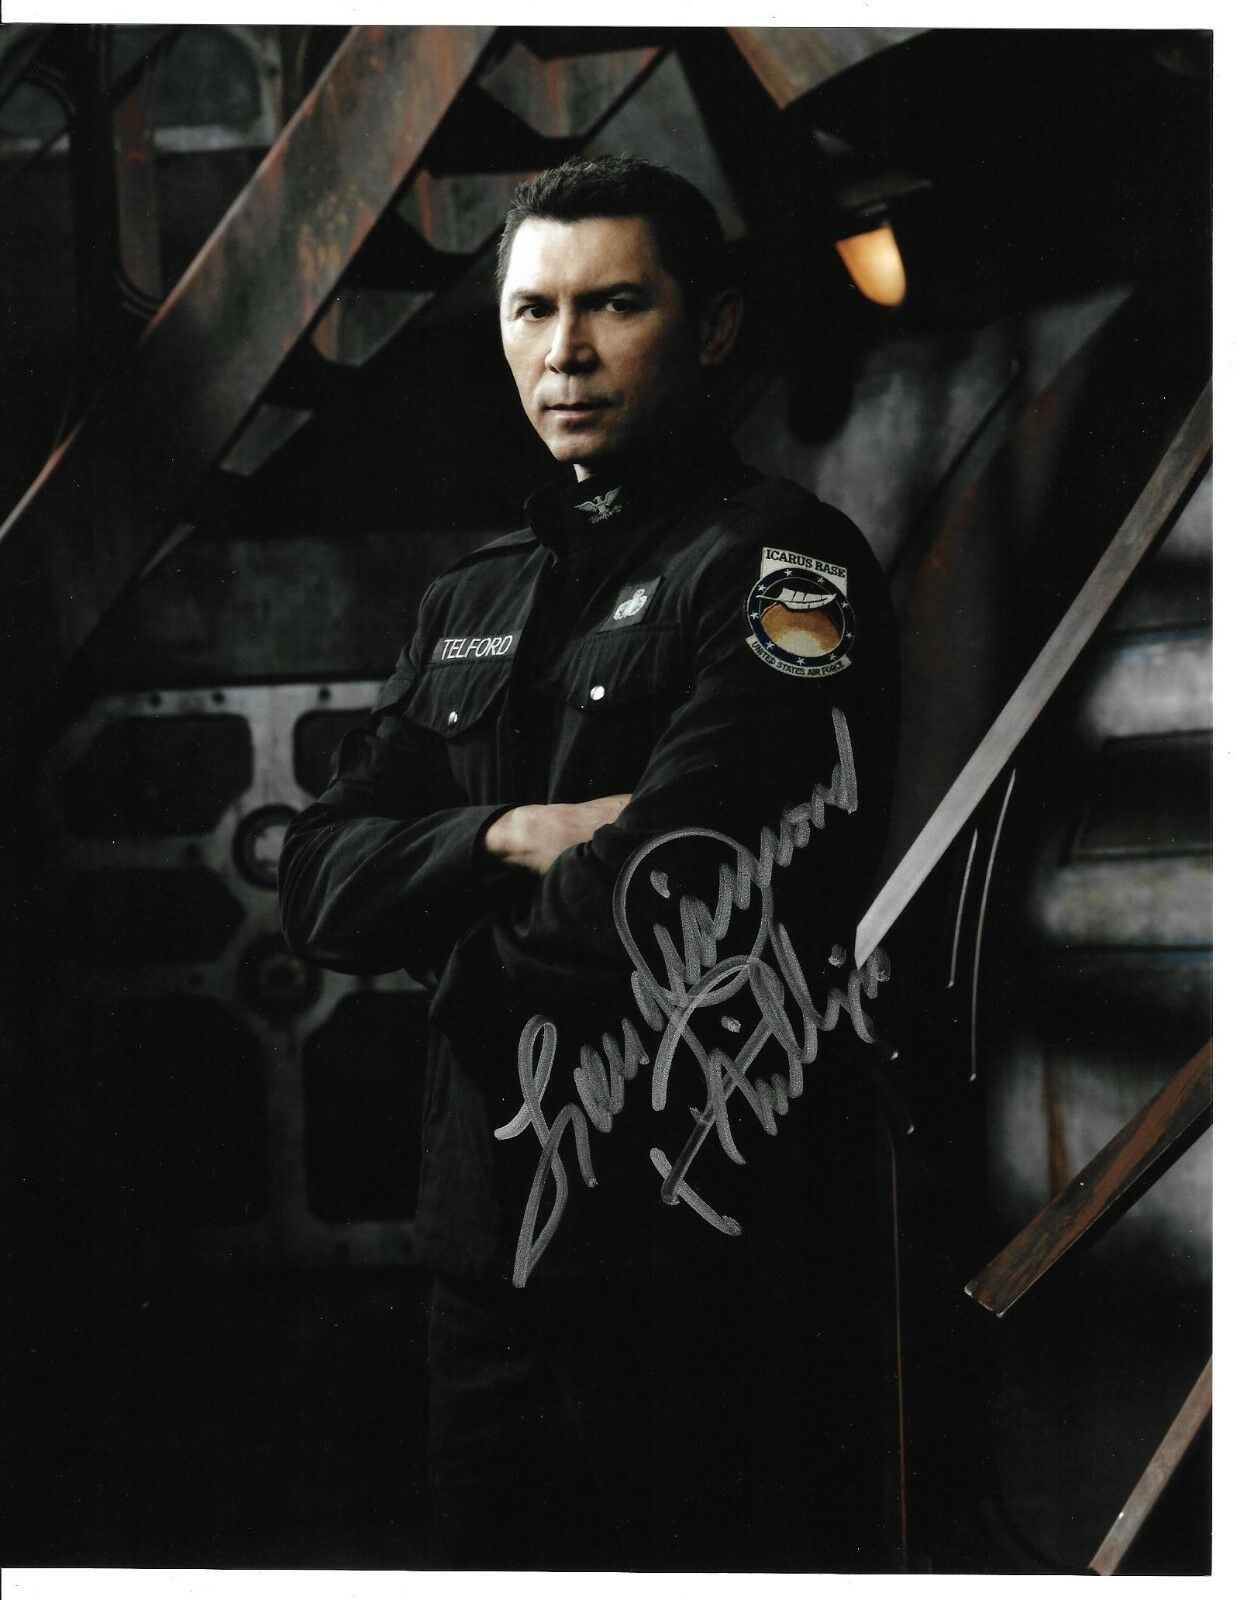 Television David Blue W/ Coa Signed 8x10 Autograph Photo Sgu Stargate Universe